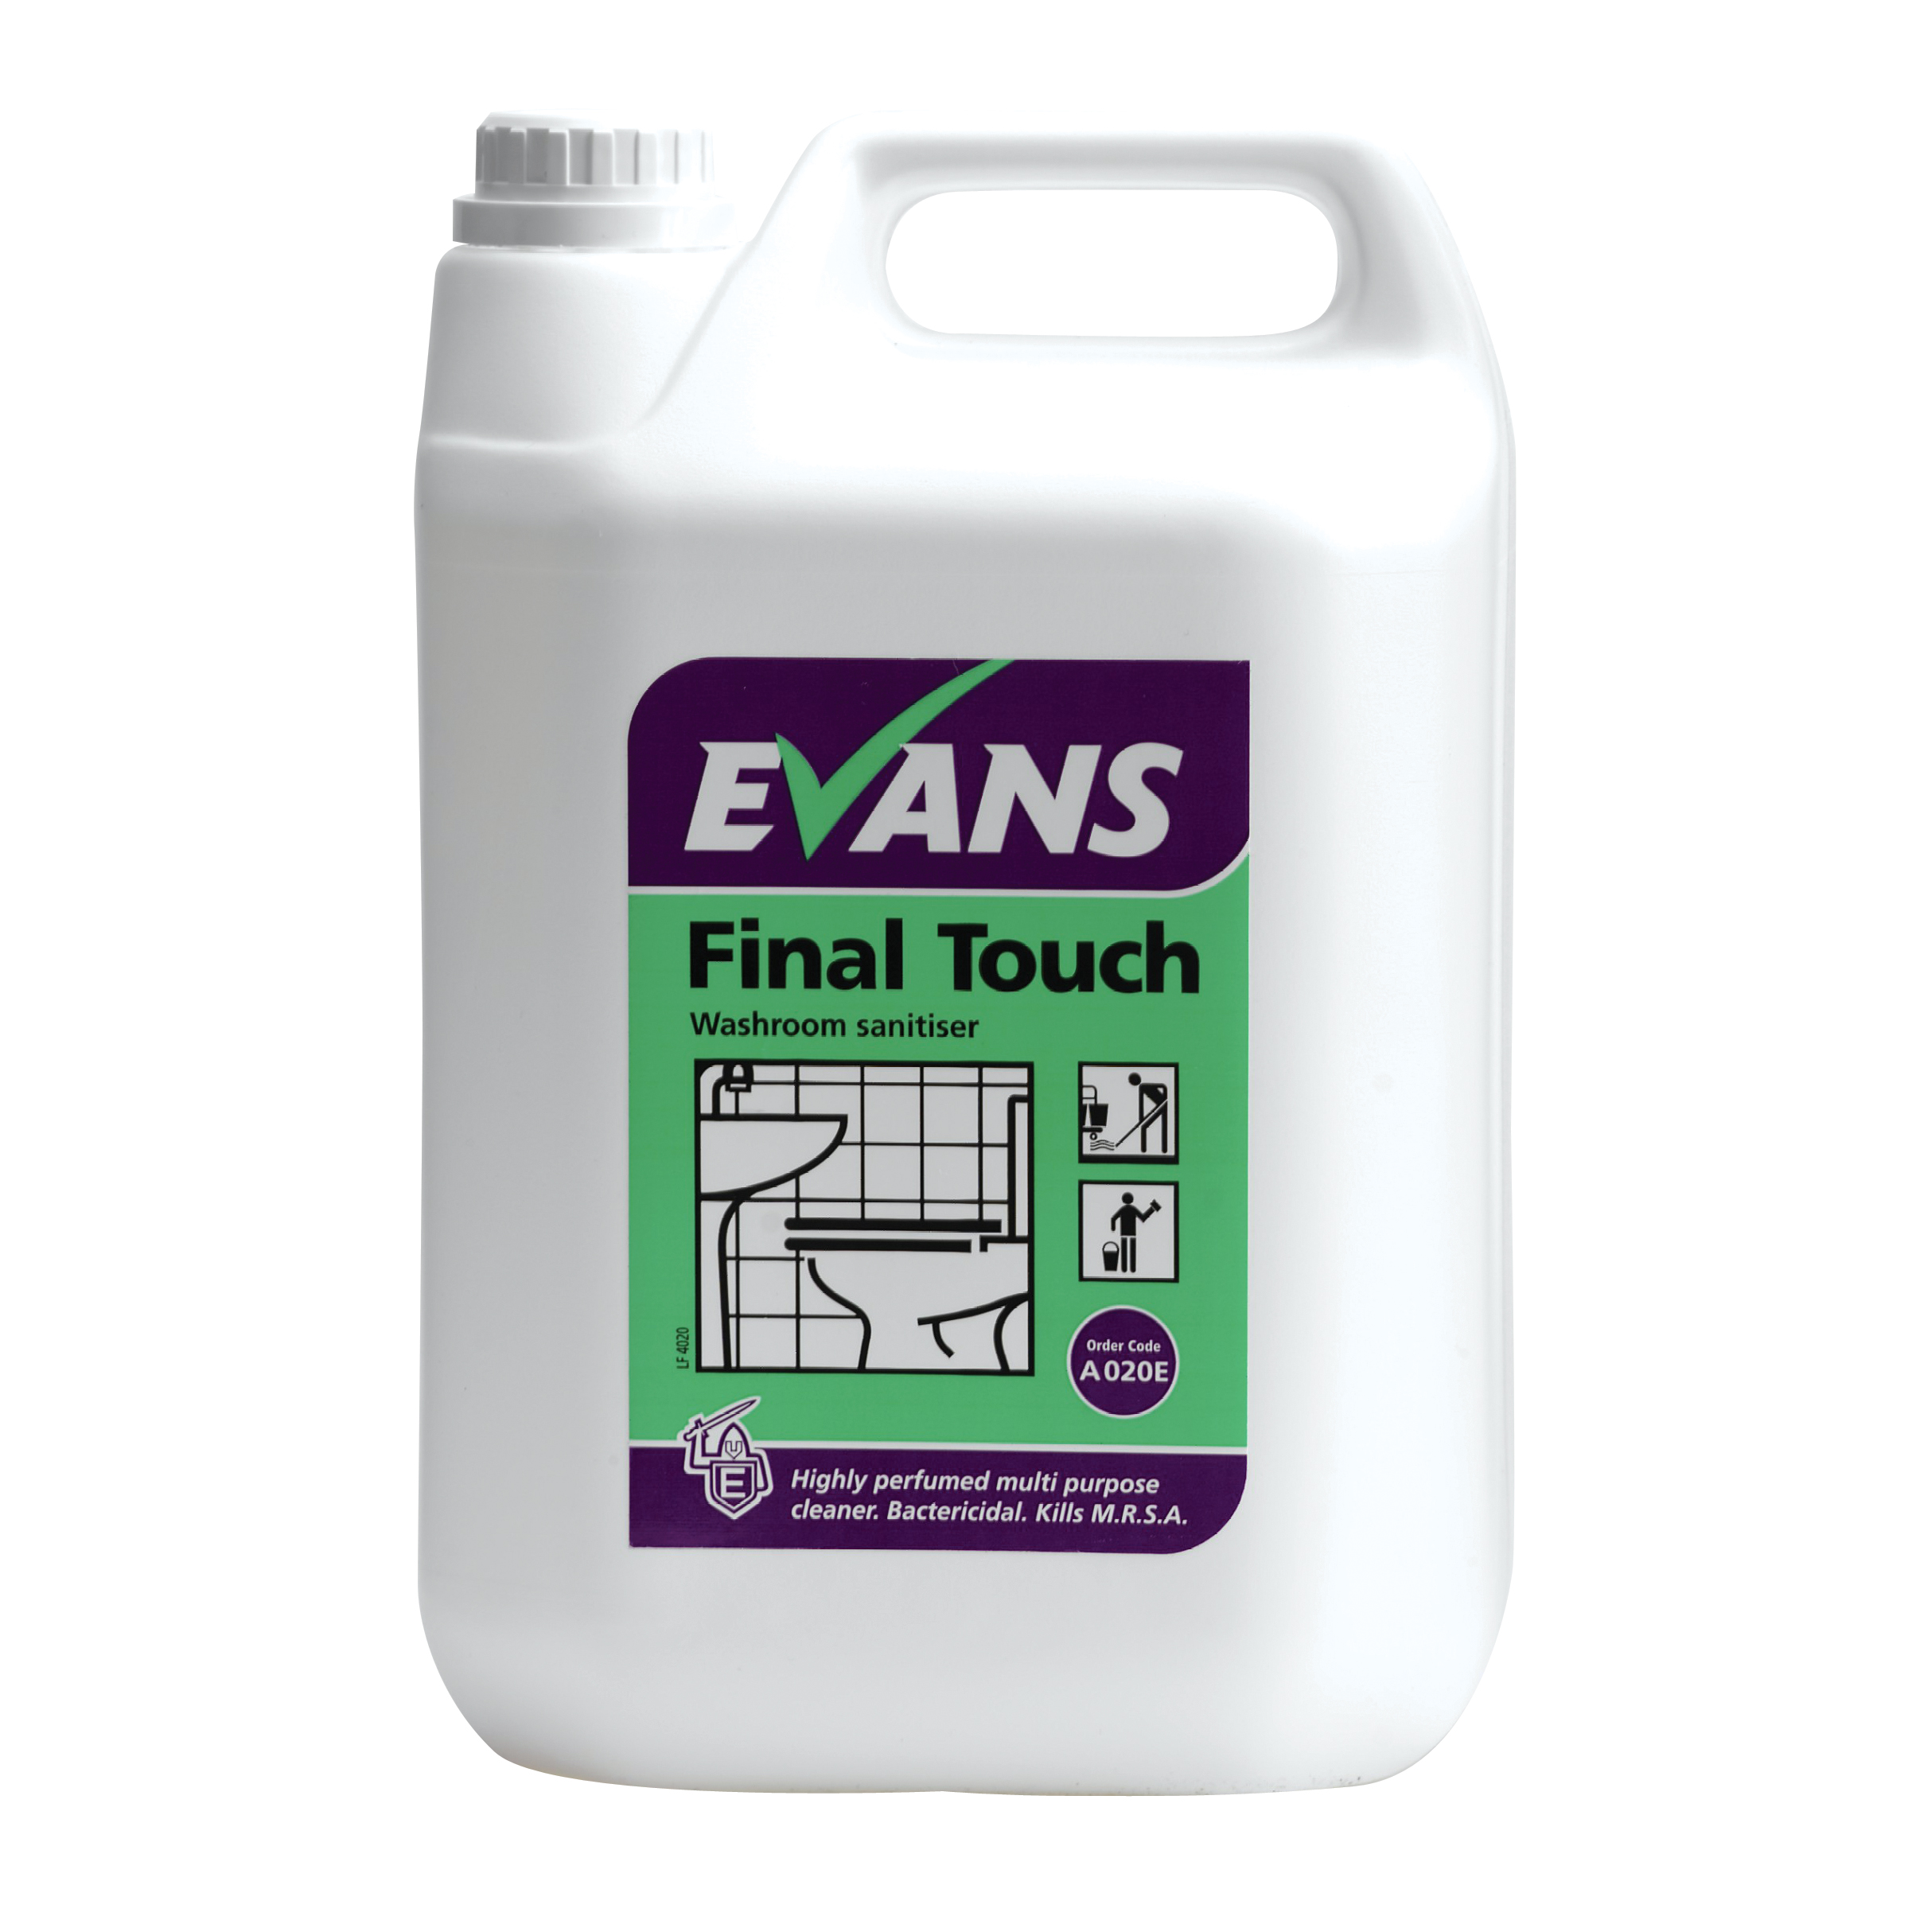 Evans Vanodine Final Touch Bactericidal Neutral Cleaner